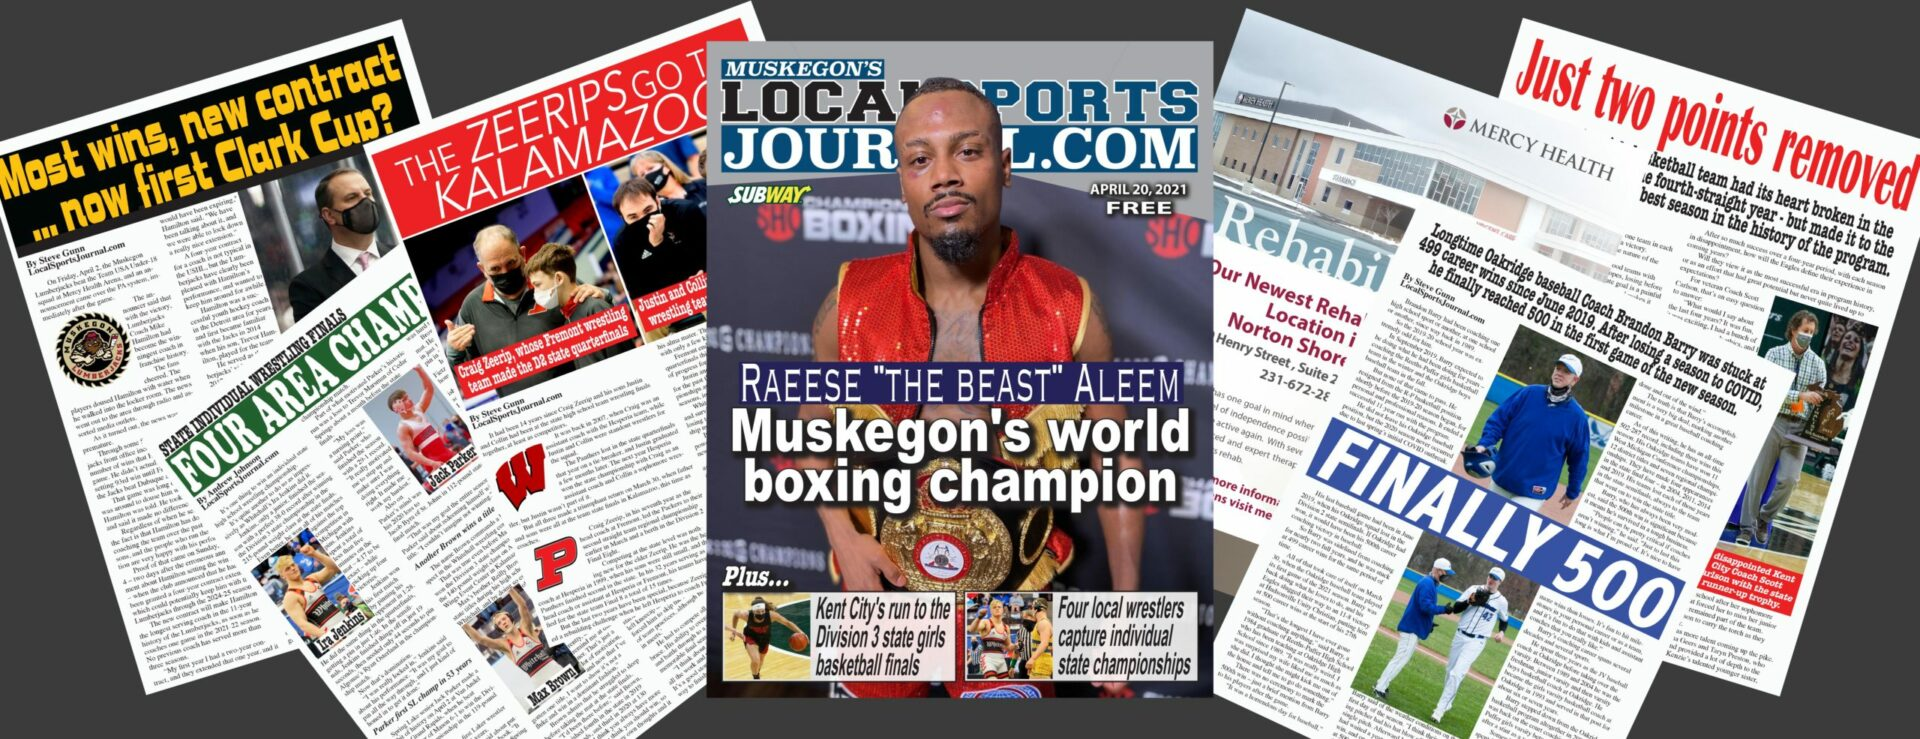 """Raeese """"The Beast"""" Aleem: Muskegon's world boxing champ, who remembers where he came from and who guided him"""